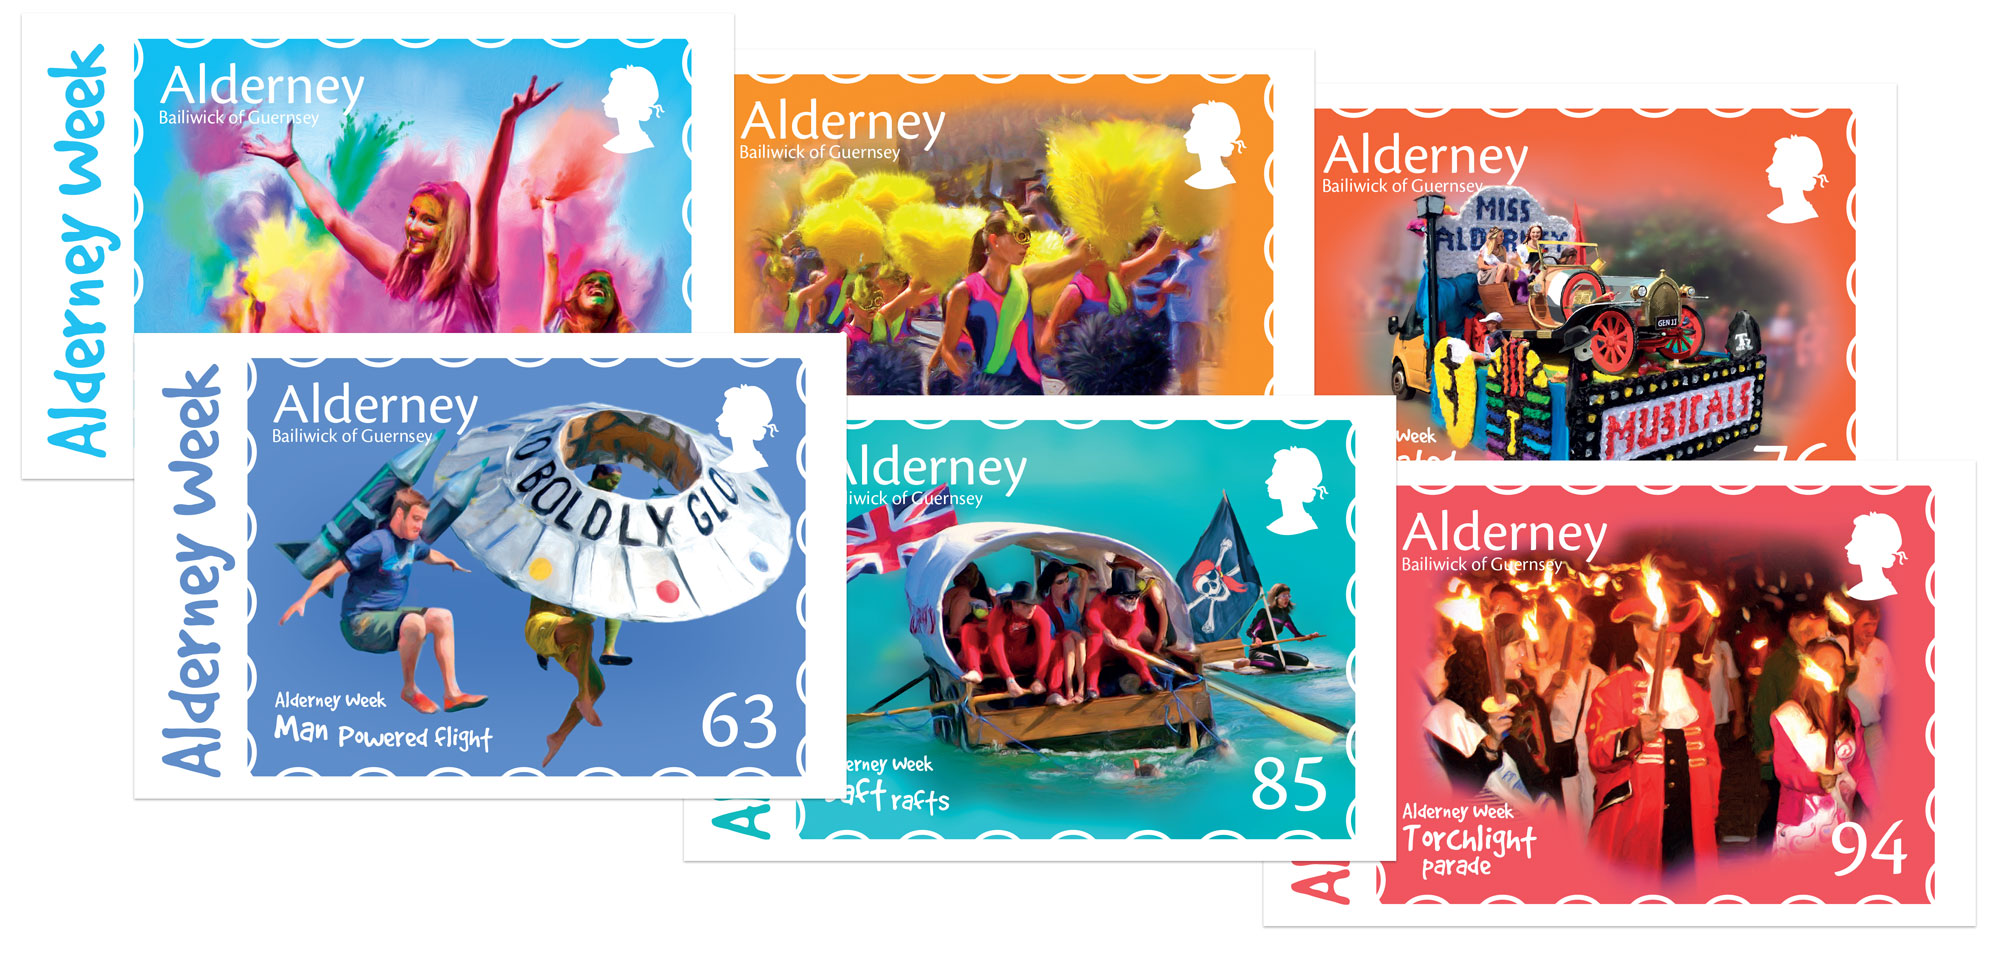 Alderney Week Postcards